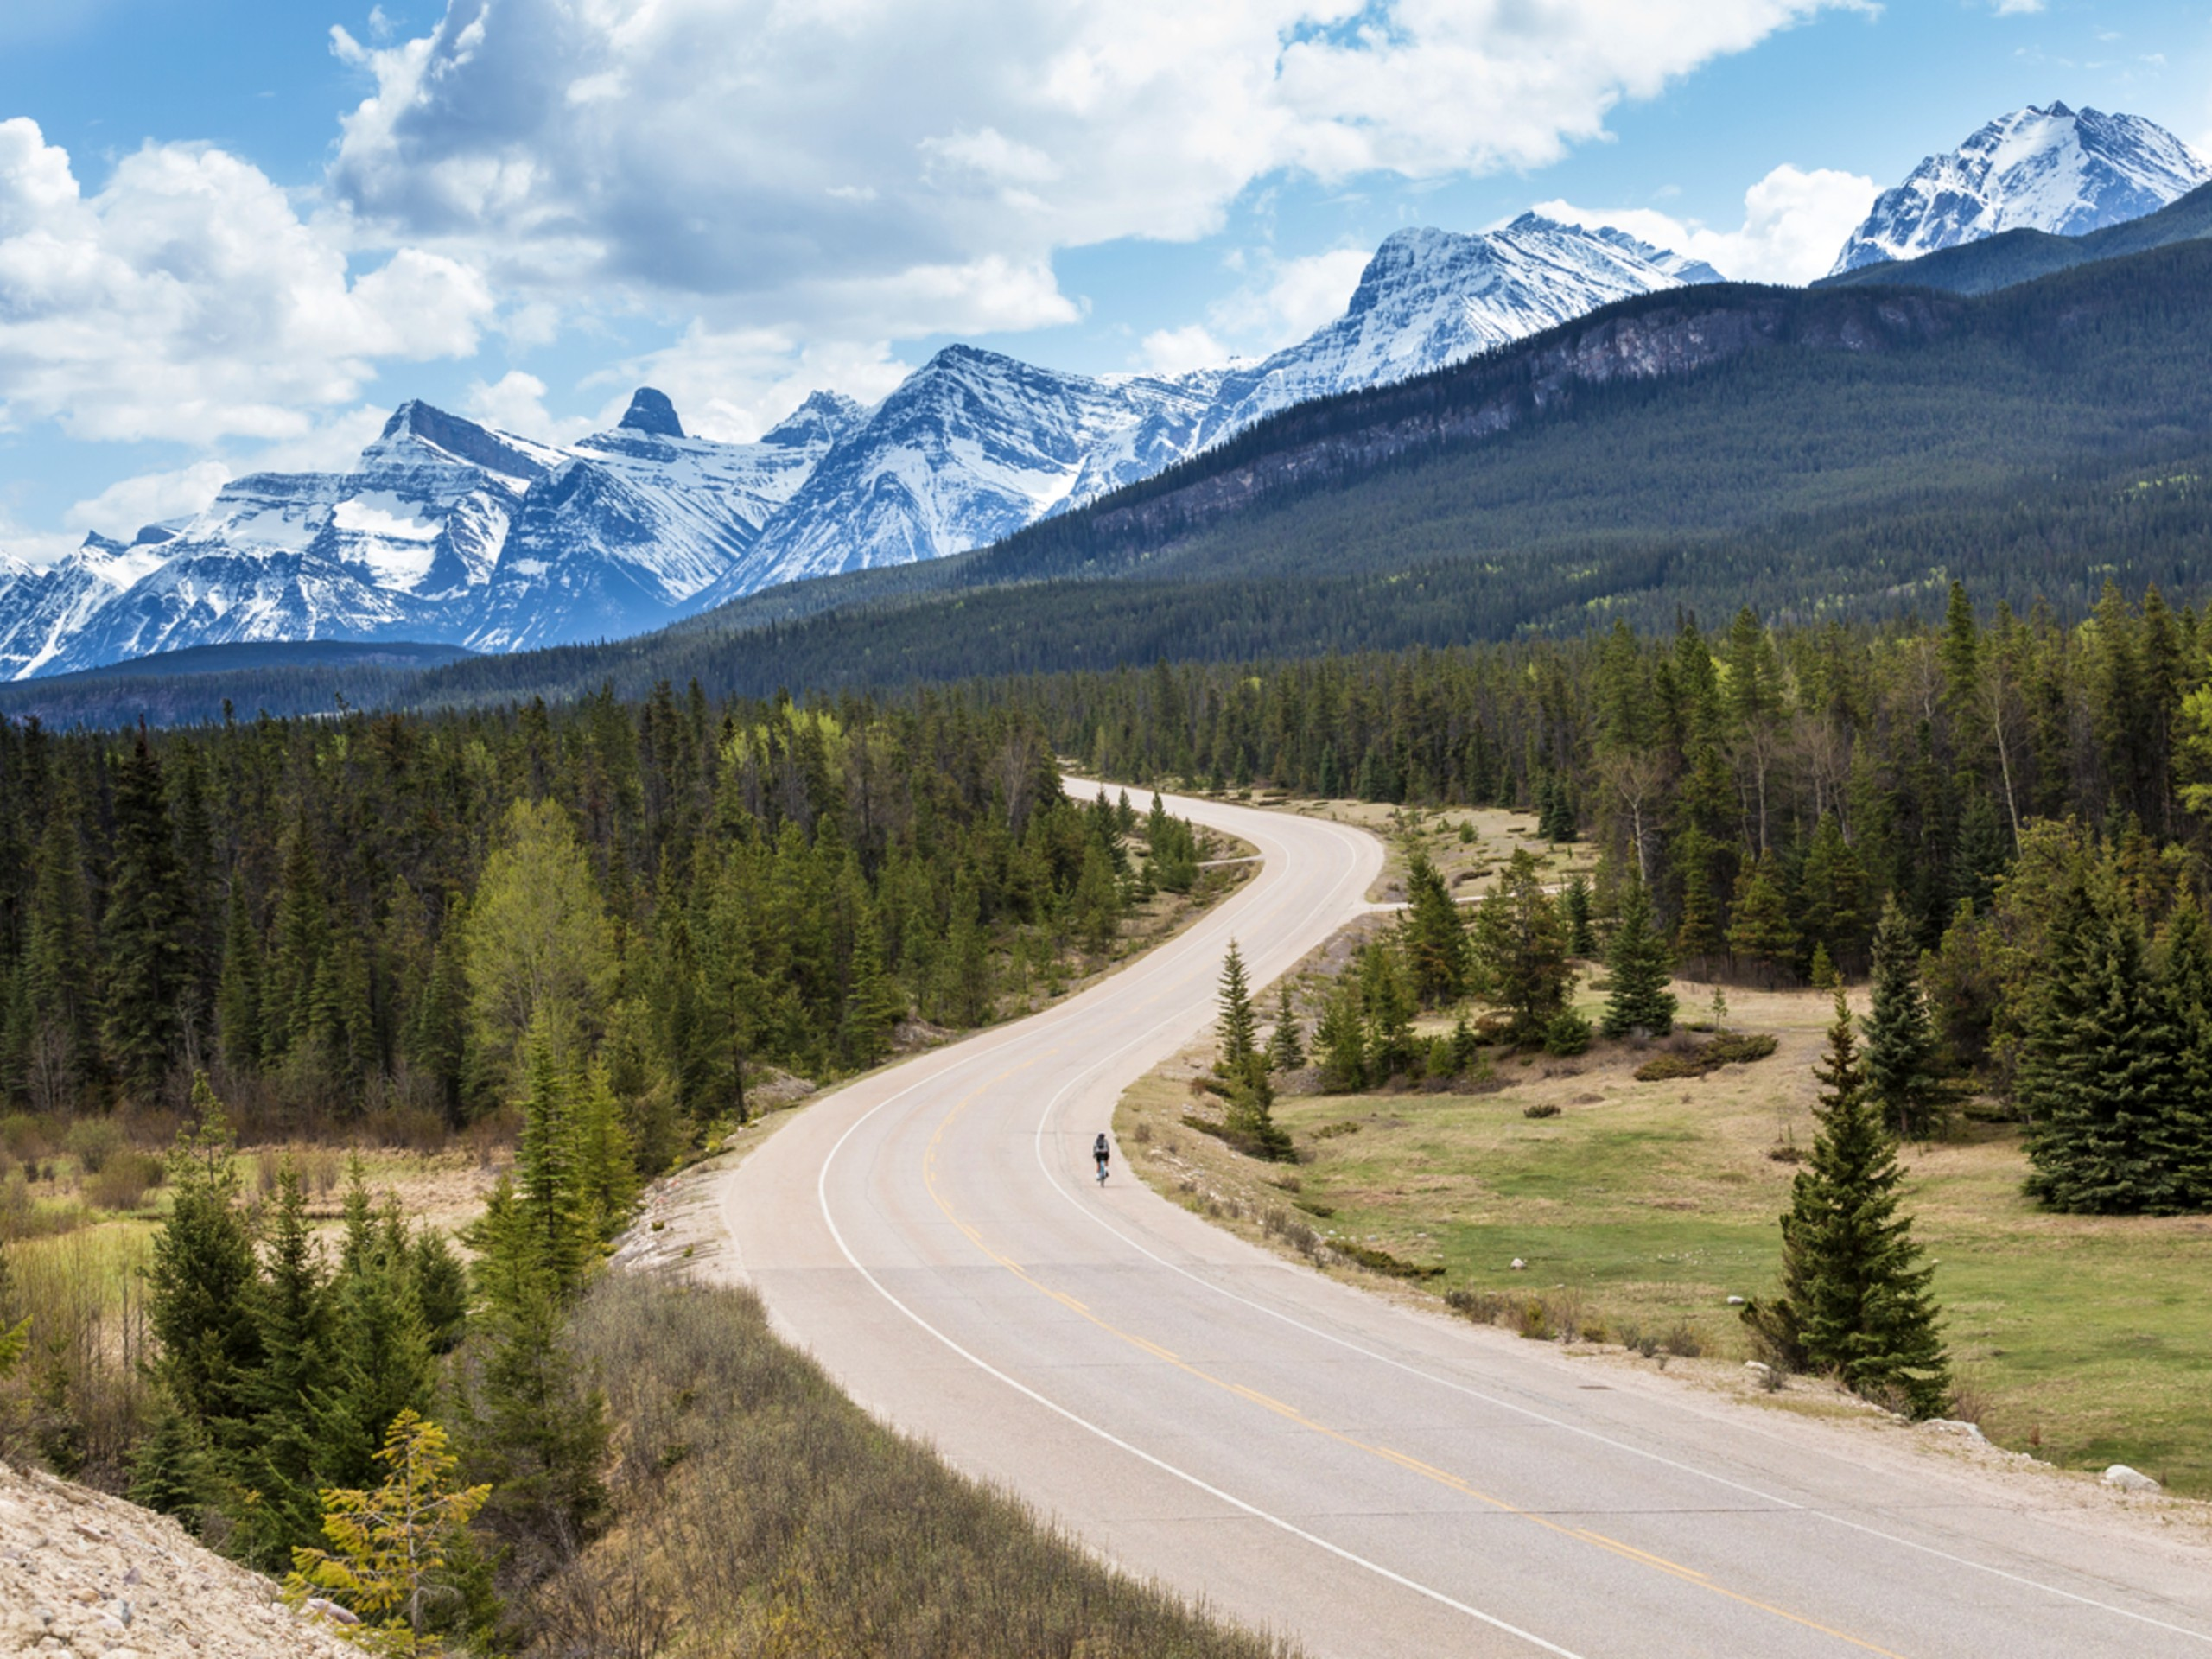 Lone biker in front of the beautiful mountains of the Icefields Parkway